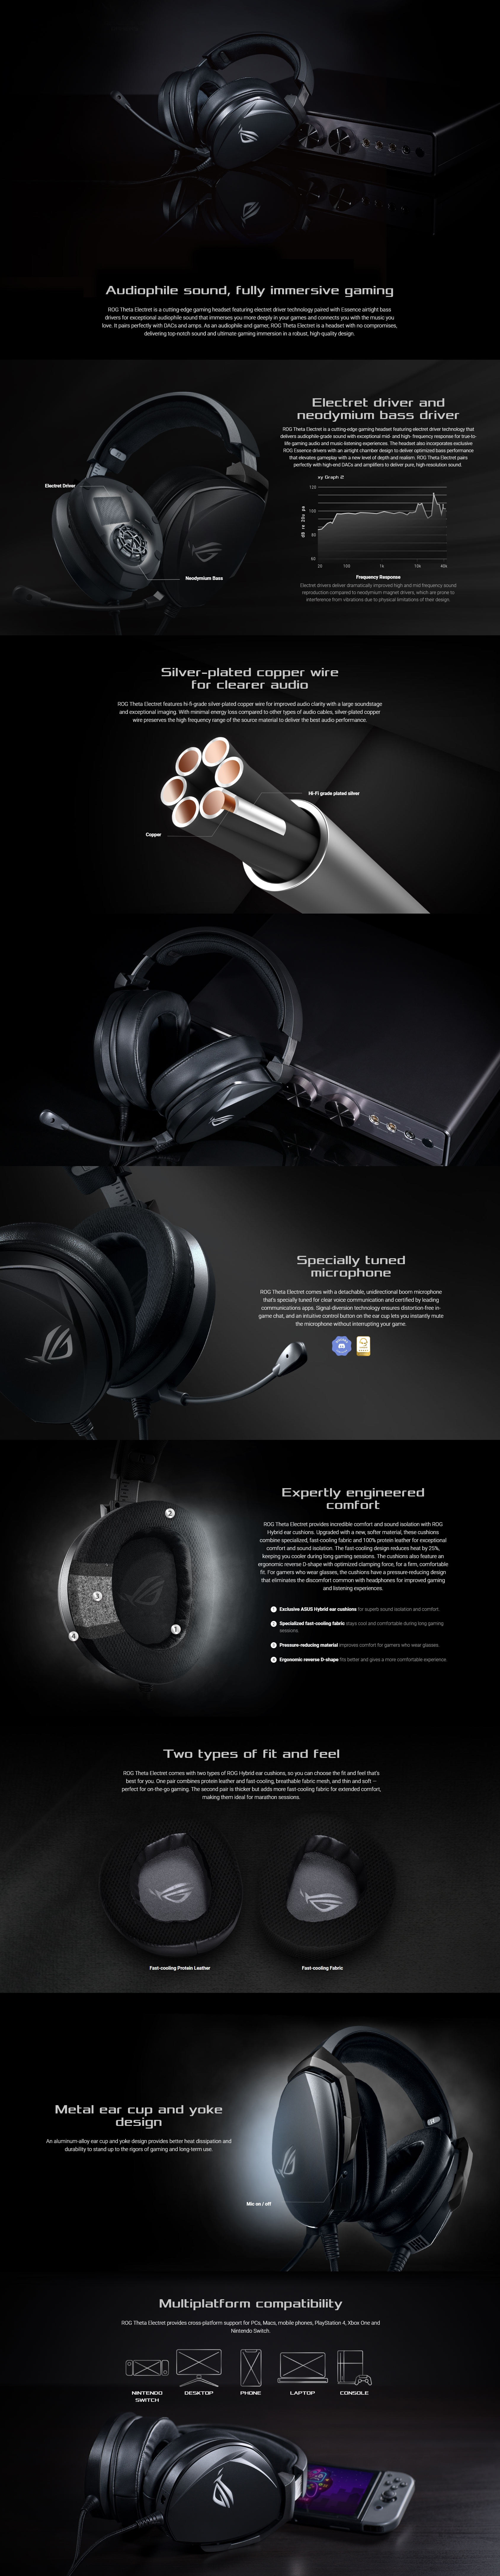 A large marketing image providing additional information about the product ASUS ROG Theta Electret Hi-Fidelity Gaming Headset - Additional alt info not provided